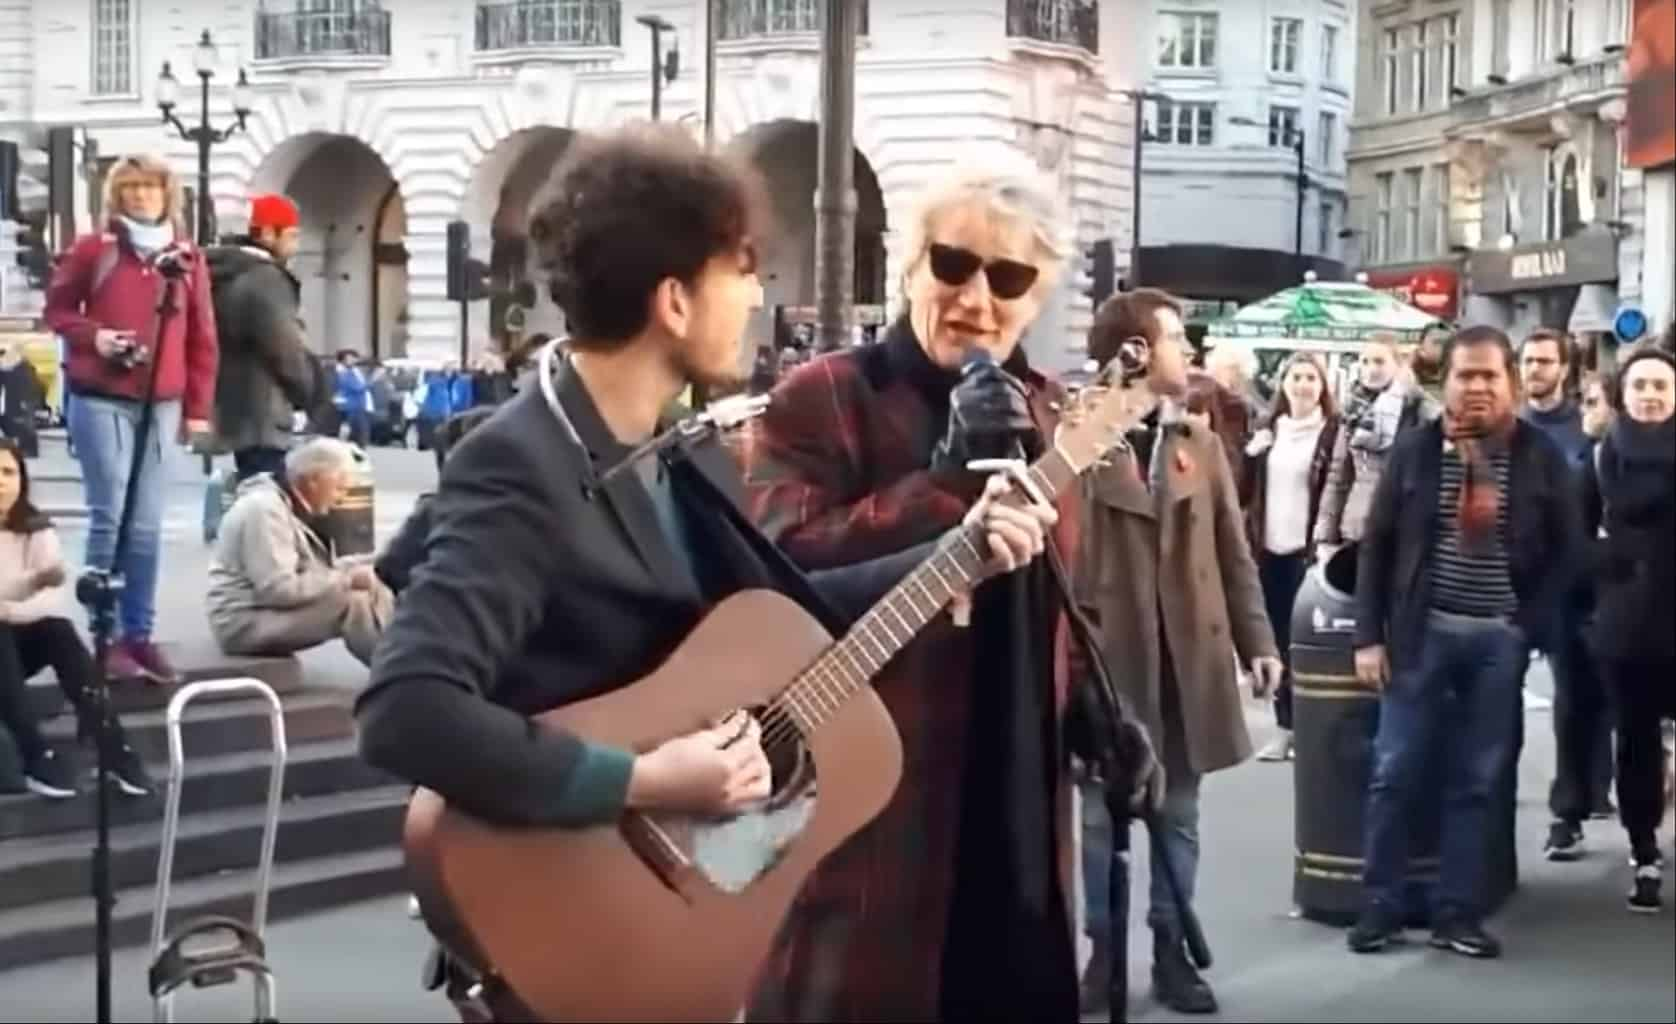 rod stewart street performance